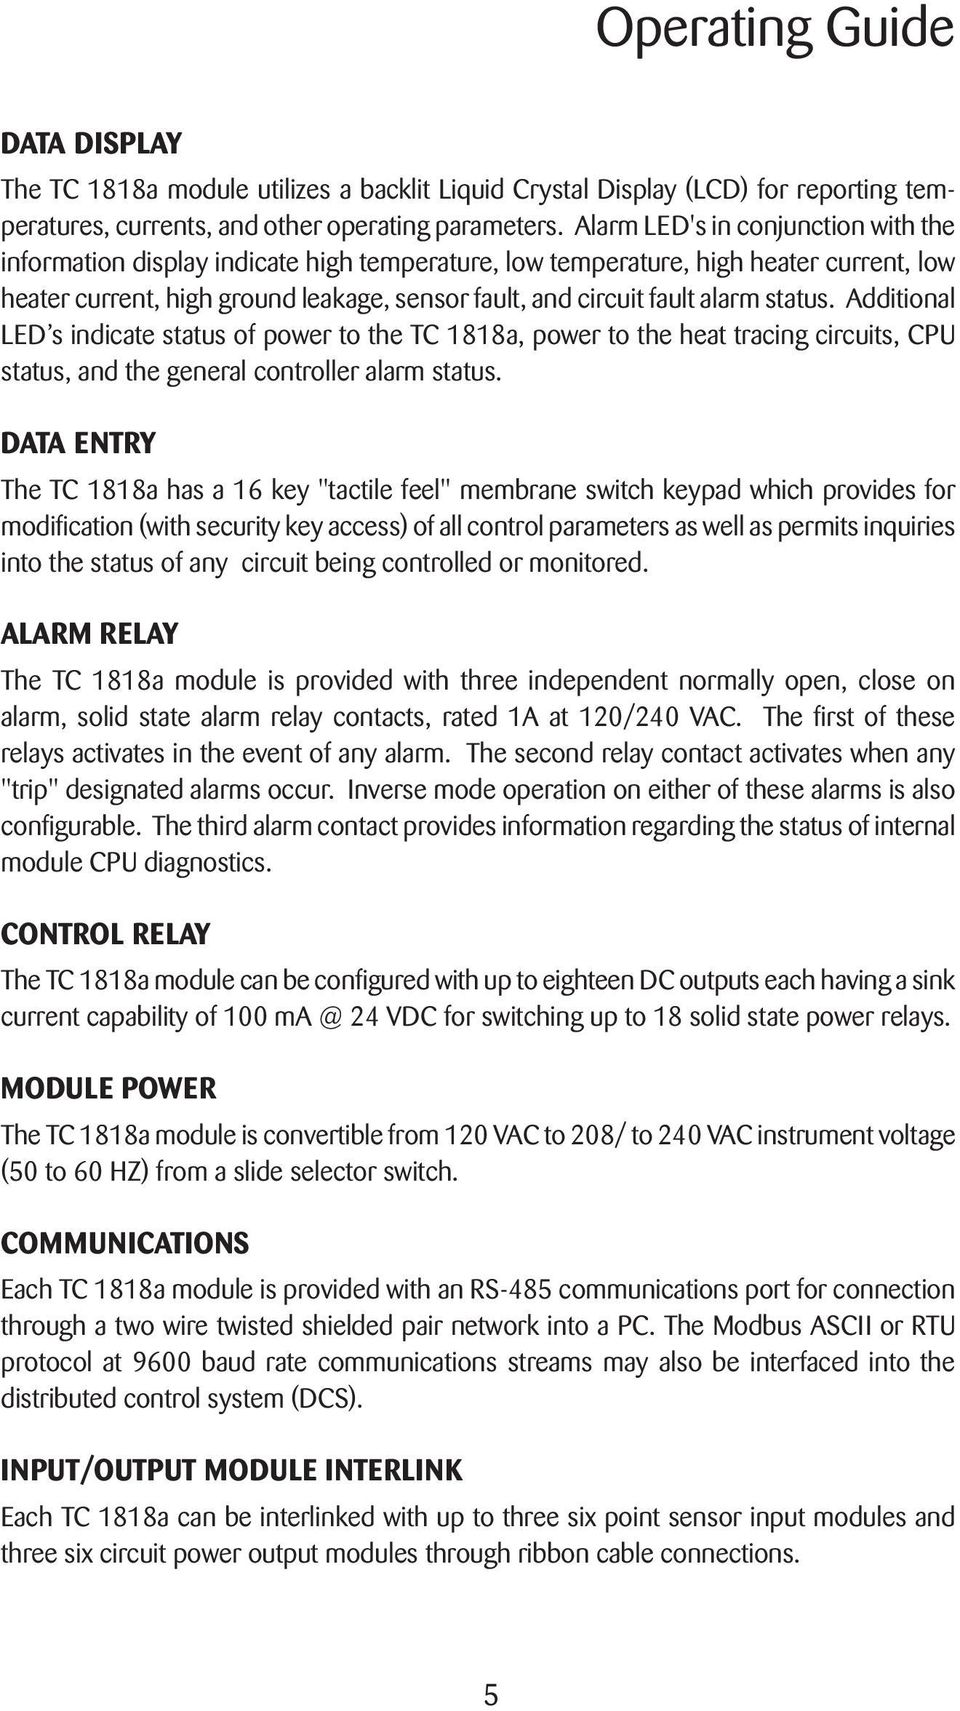 Tc 1818a Operating Guide Control Module Swm Pdf Current Alarm Relay Status Additional Led S Indicate Of Power To The